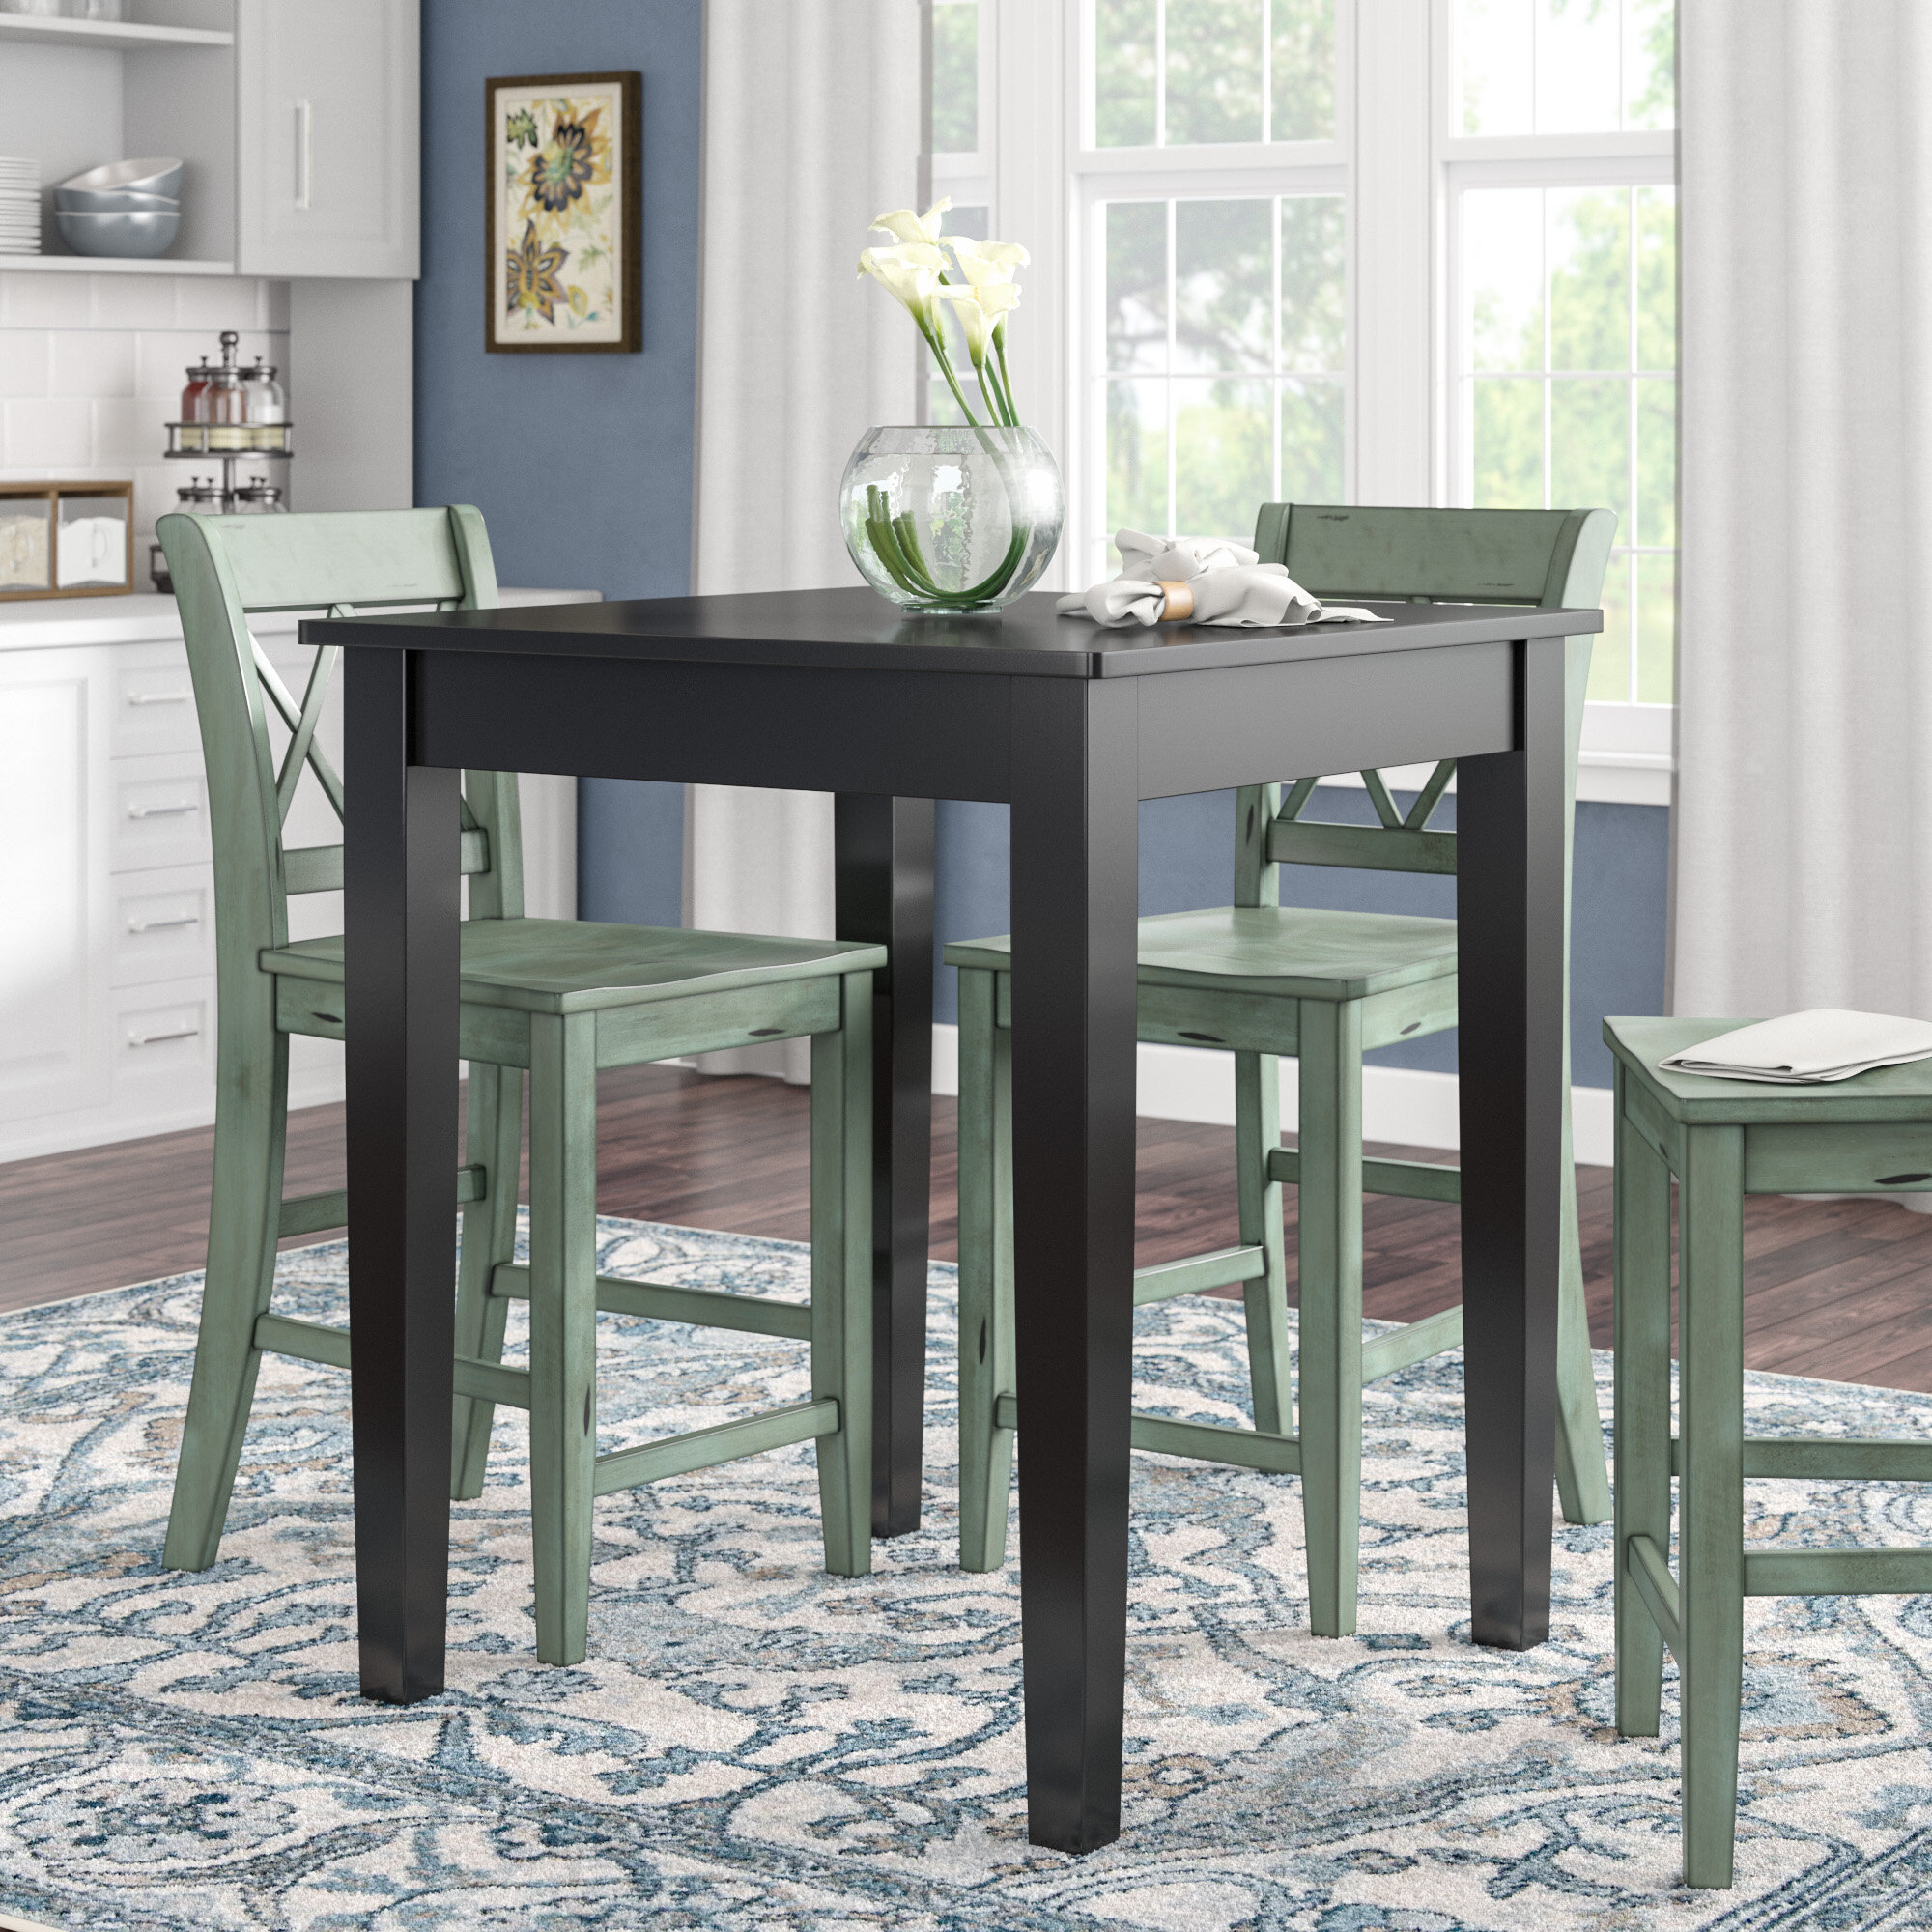 Square Tall Kitchen Dining Tables You Ll Love In 2021 Wayfair